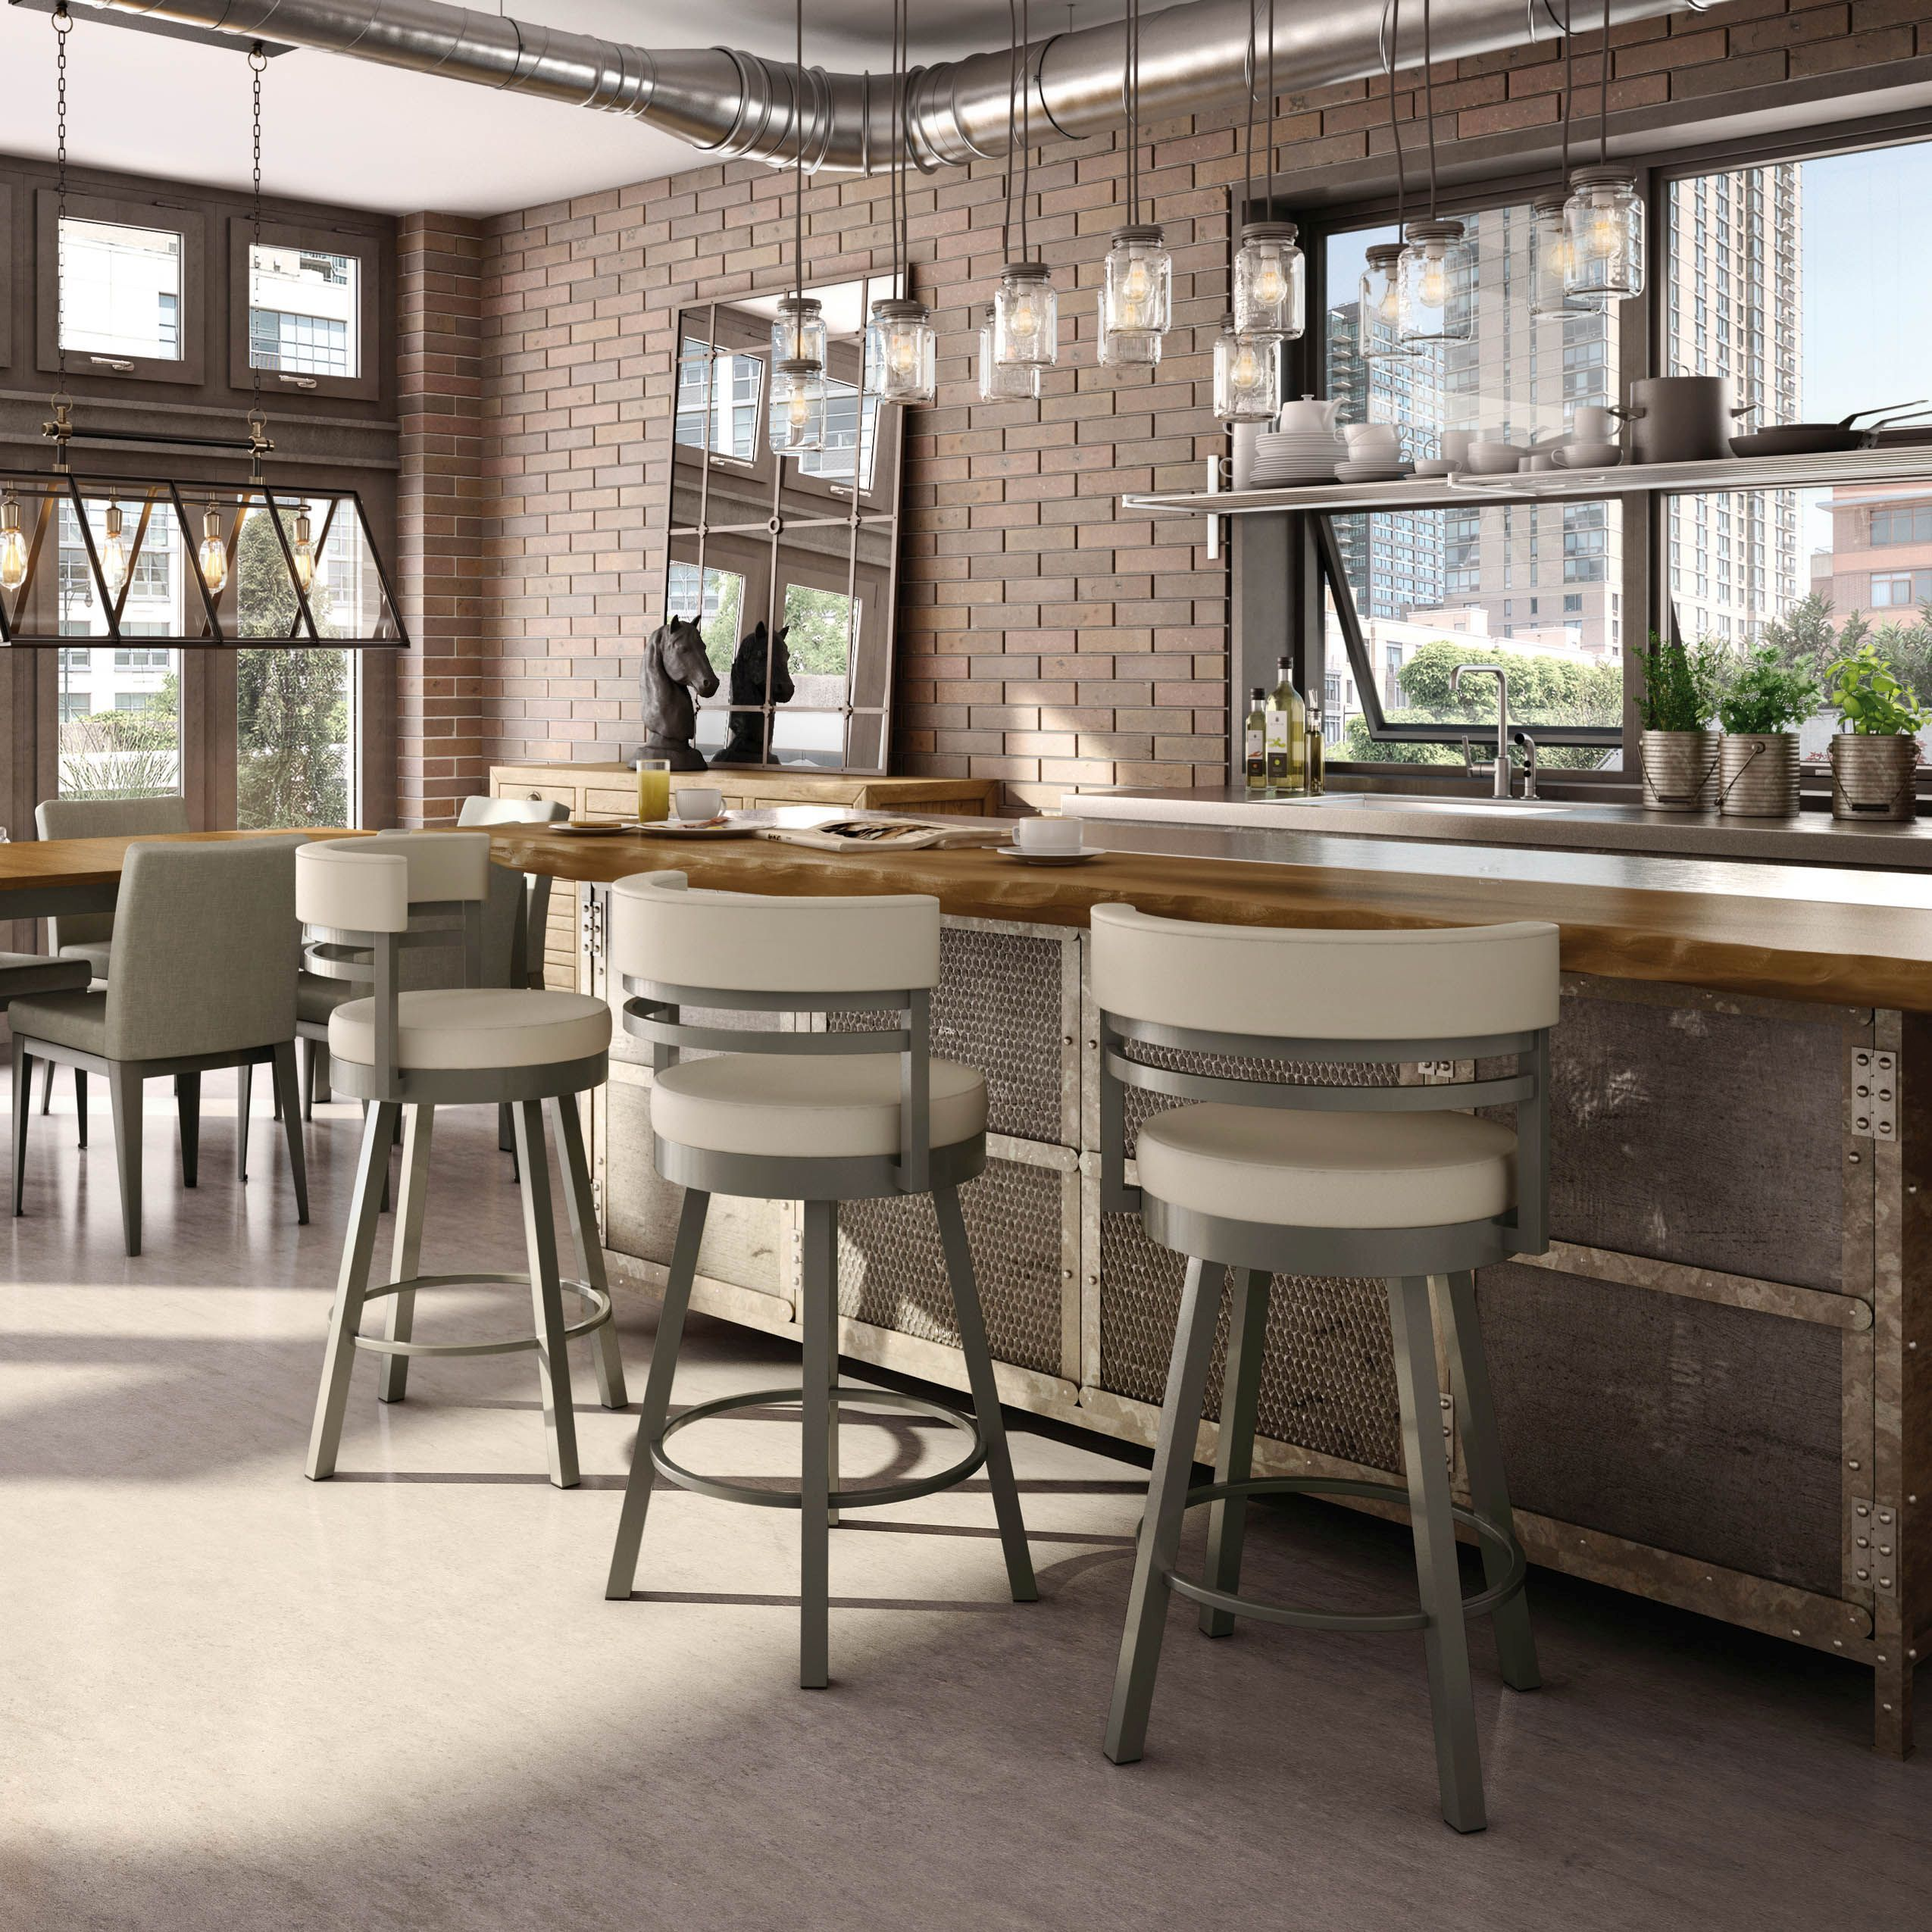 Round upholstered metal bar stools with 4 legs and backrests, Amisco